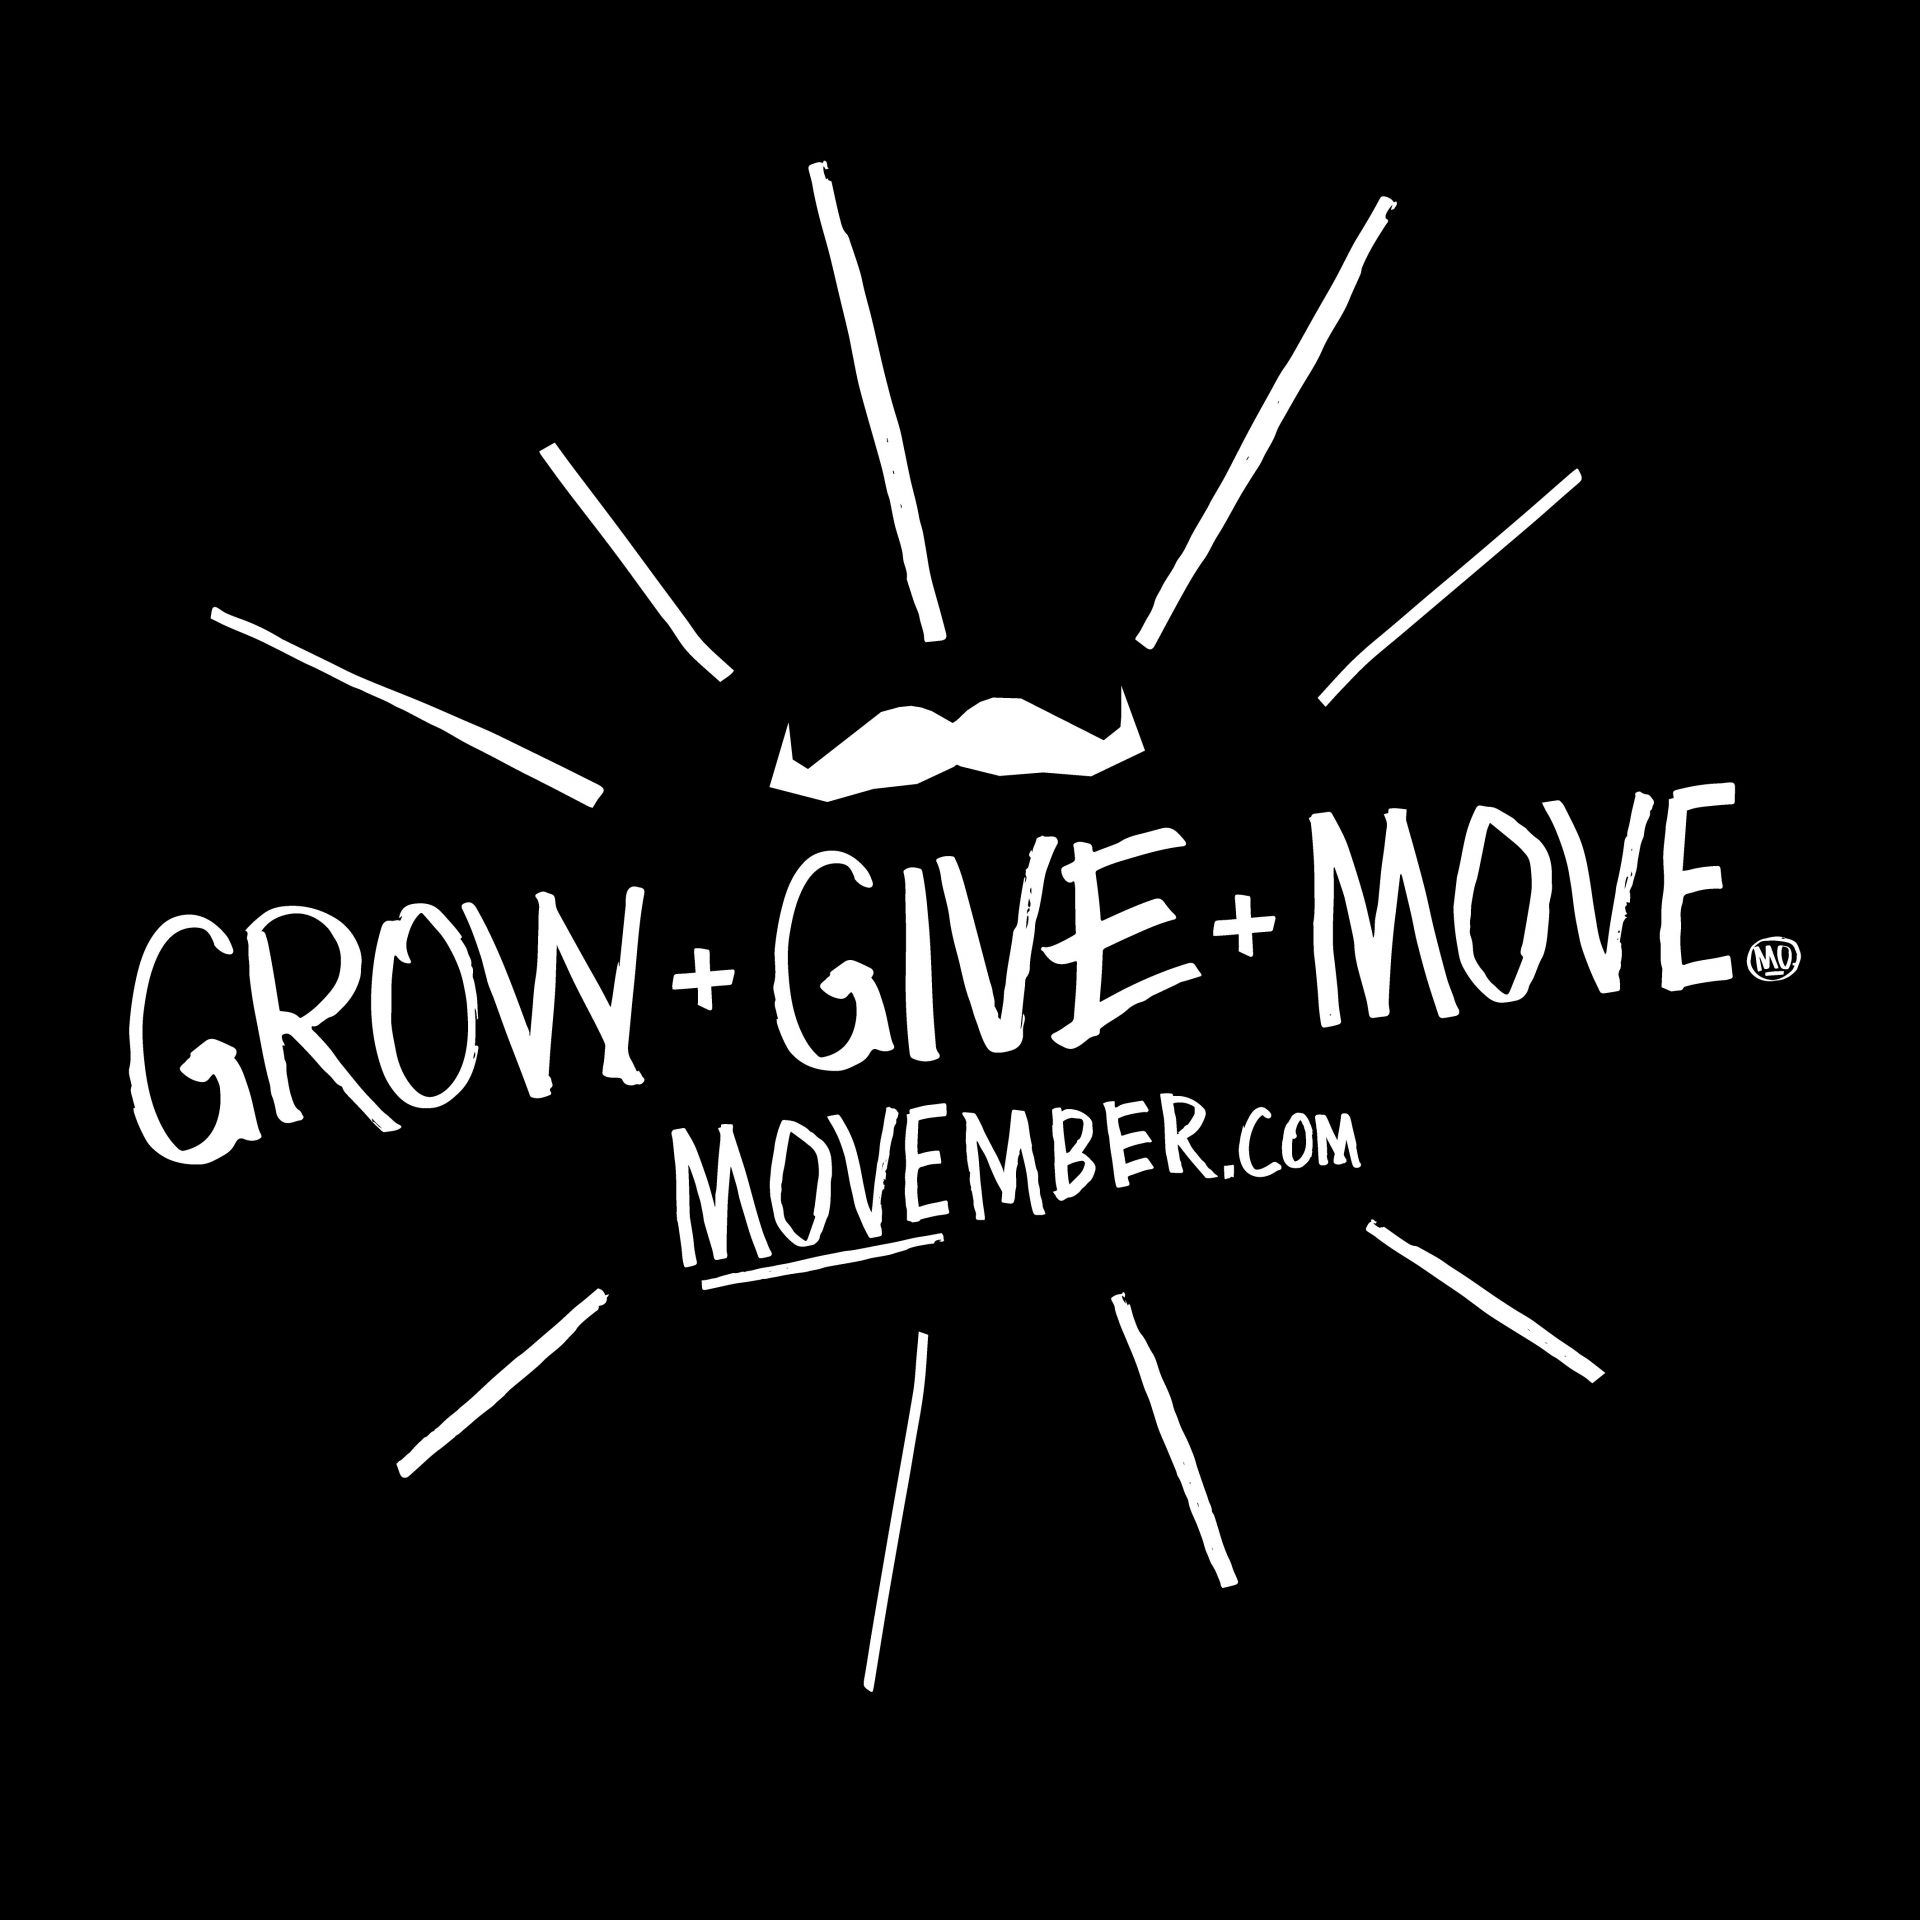 MG-SLS1012-Movember-Campaign-Give-Grow-Move-Primary-White